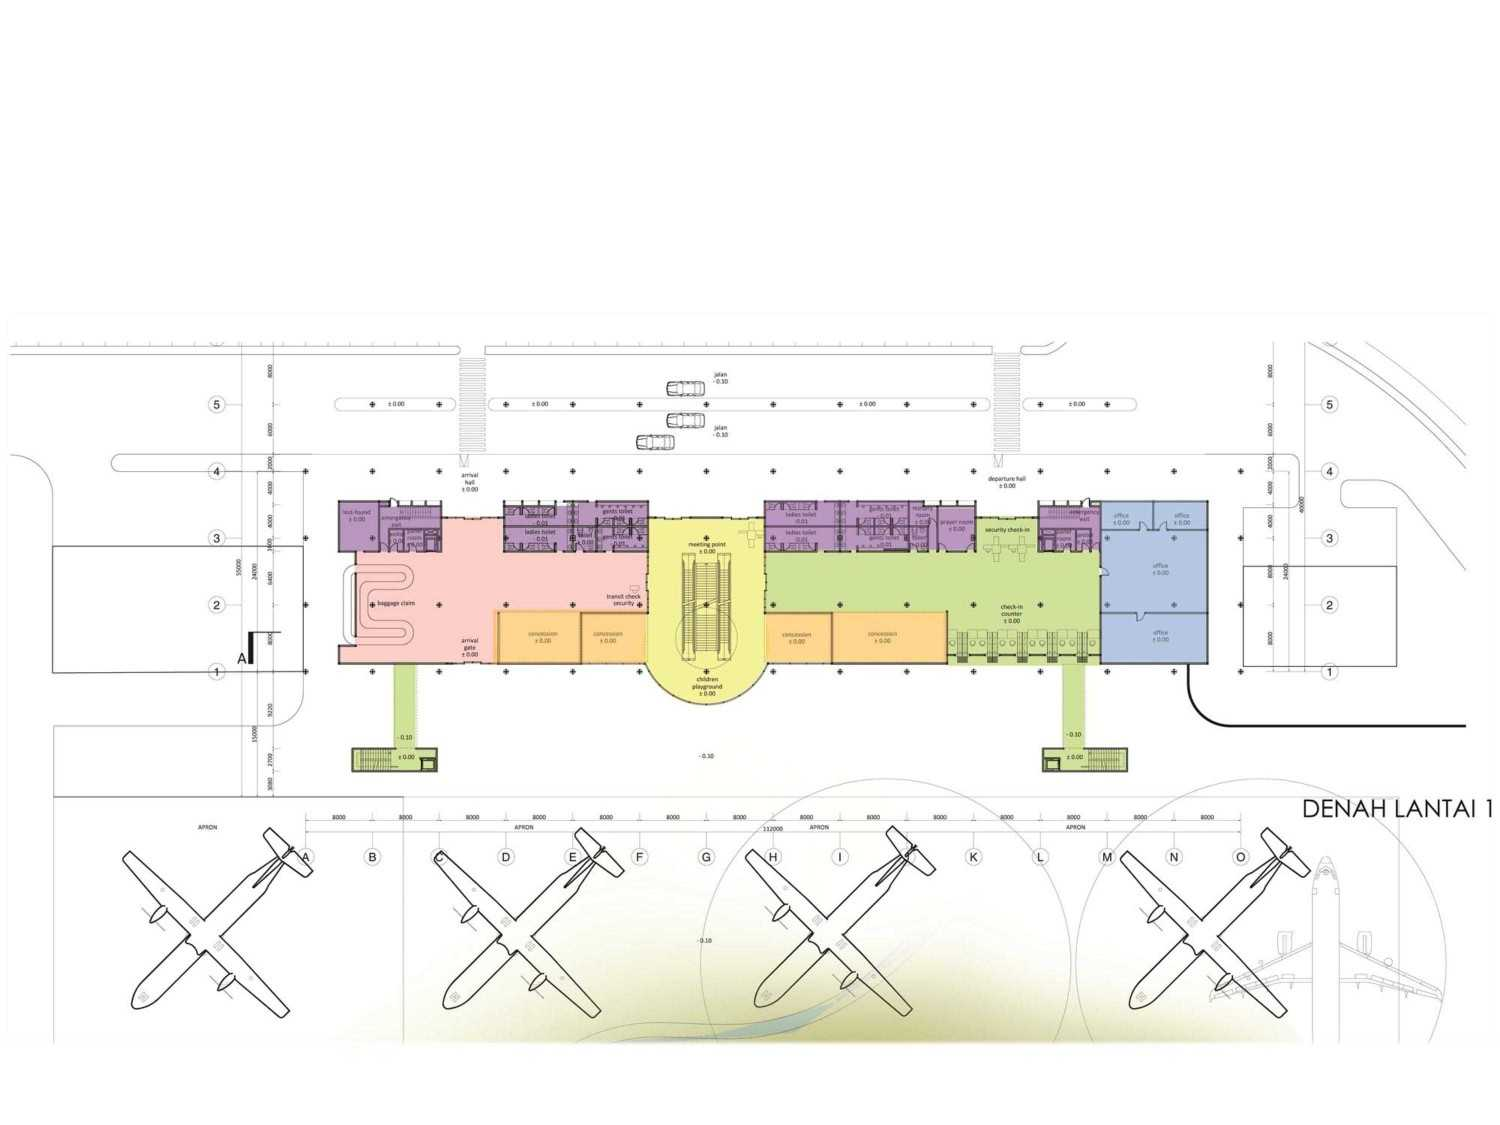 Monokroma Architect Mali Alor Airport  Alor, Ntt Alor, Ntt 6-Ground-Floor-Plan Kontemporer 14816